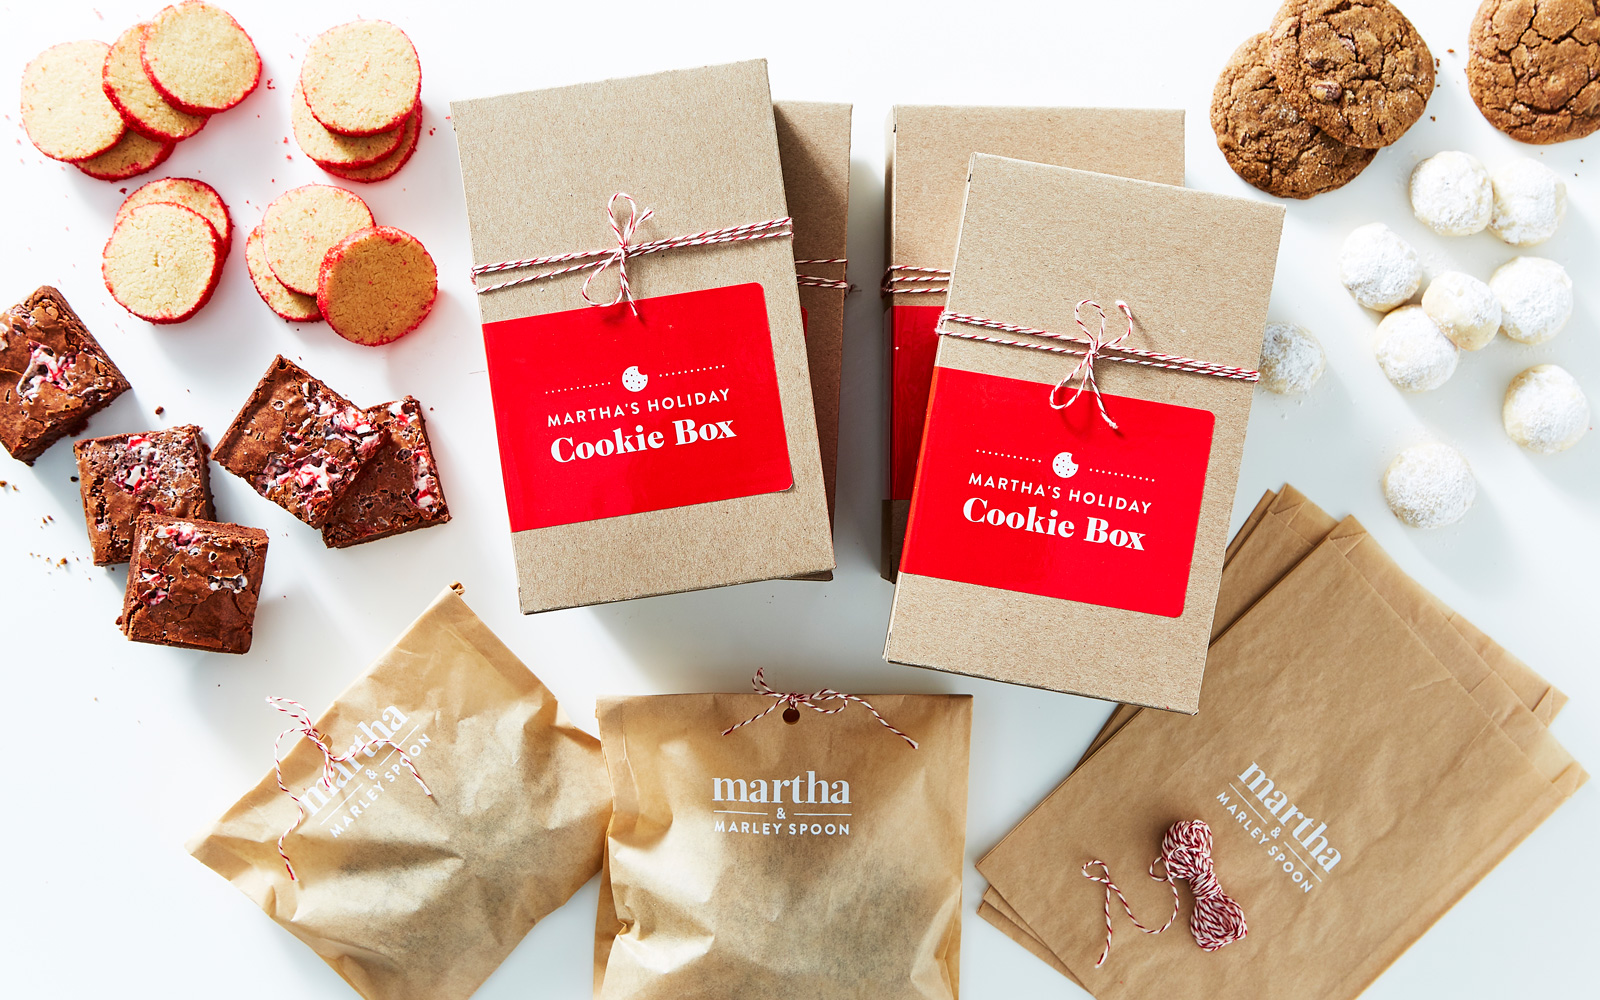 Martha and Marley Spoon has a holiday cookie kit.